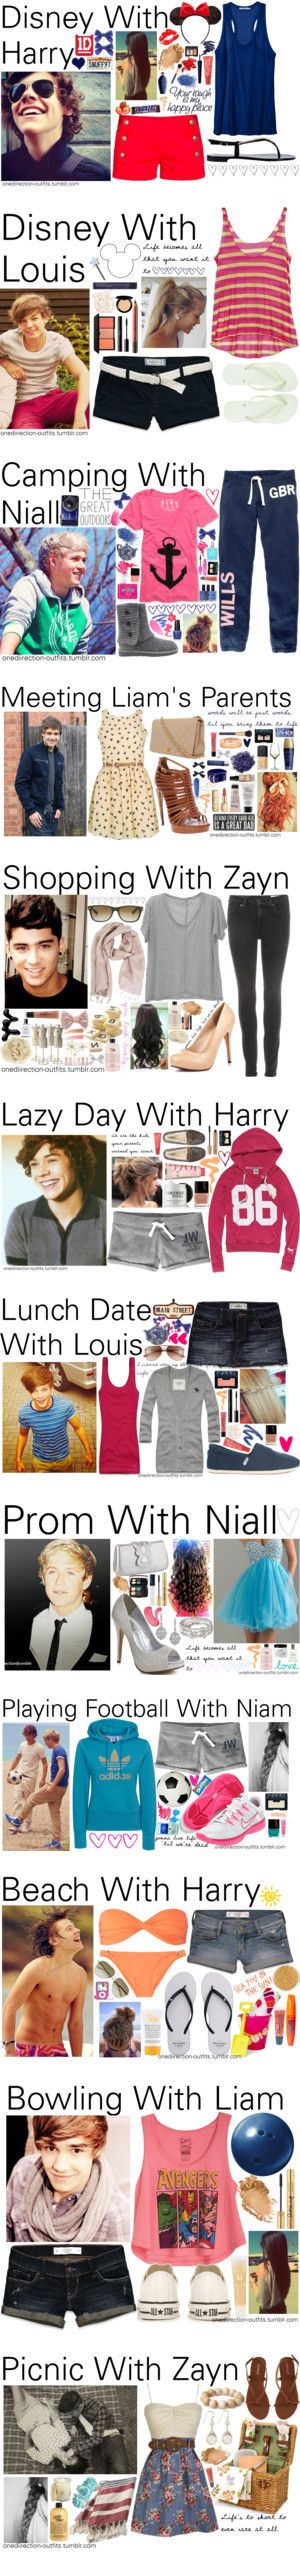 """One Direction Outfits 0 - 20 x"" by onedirection-outfits ❤ liked on Polyvore I don't like one direction but these clothes are adorable!"